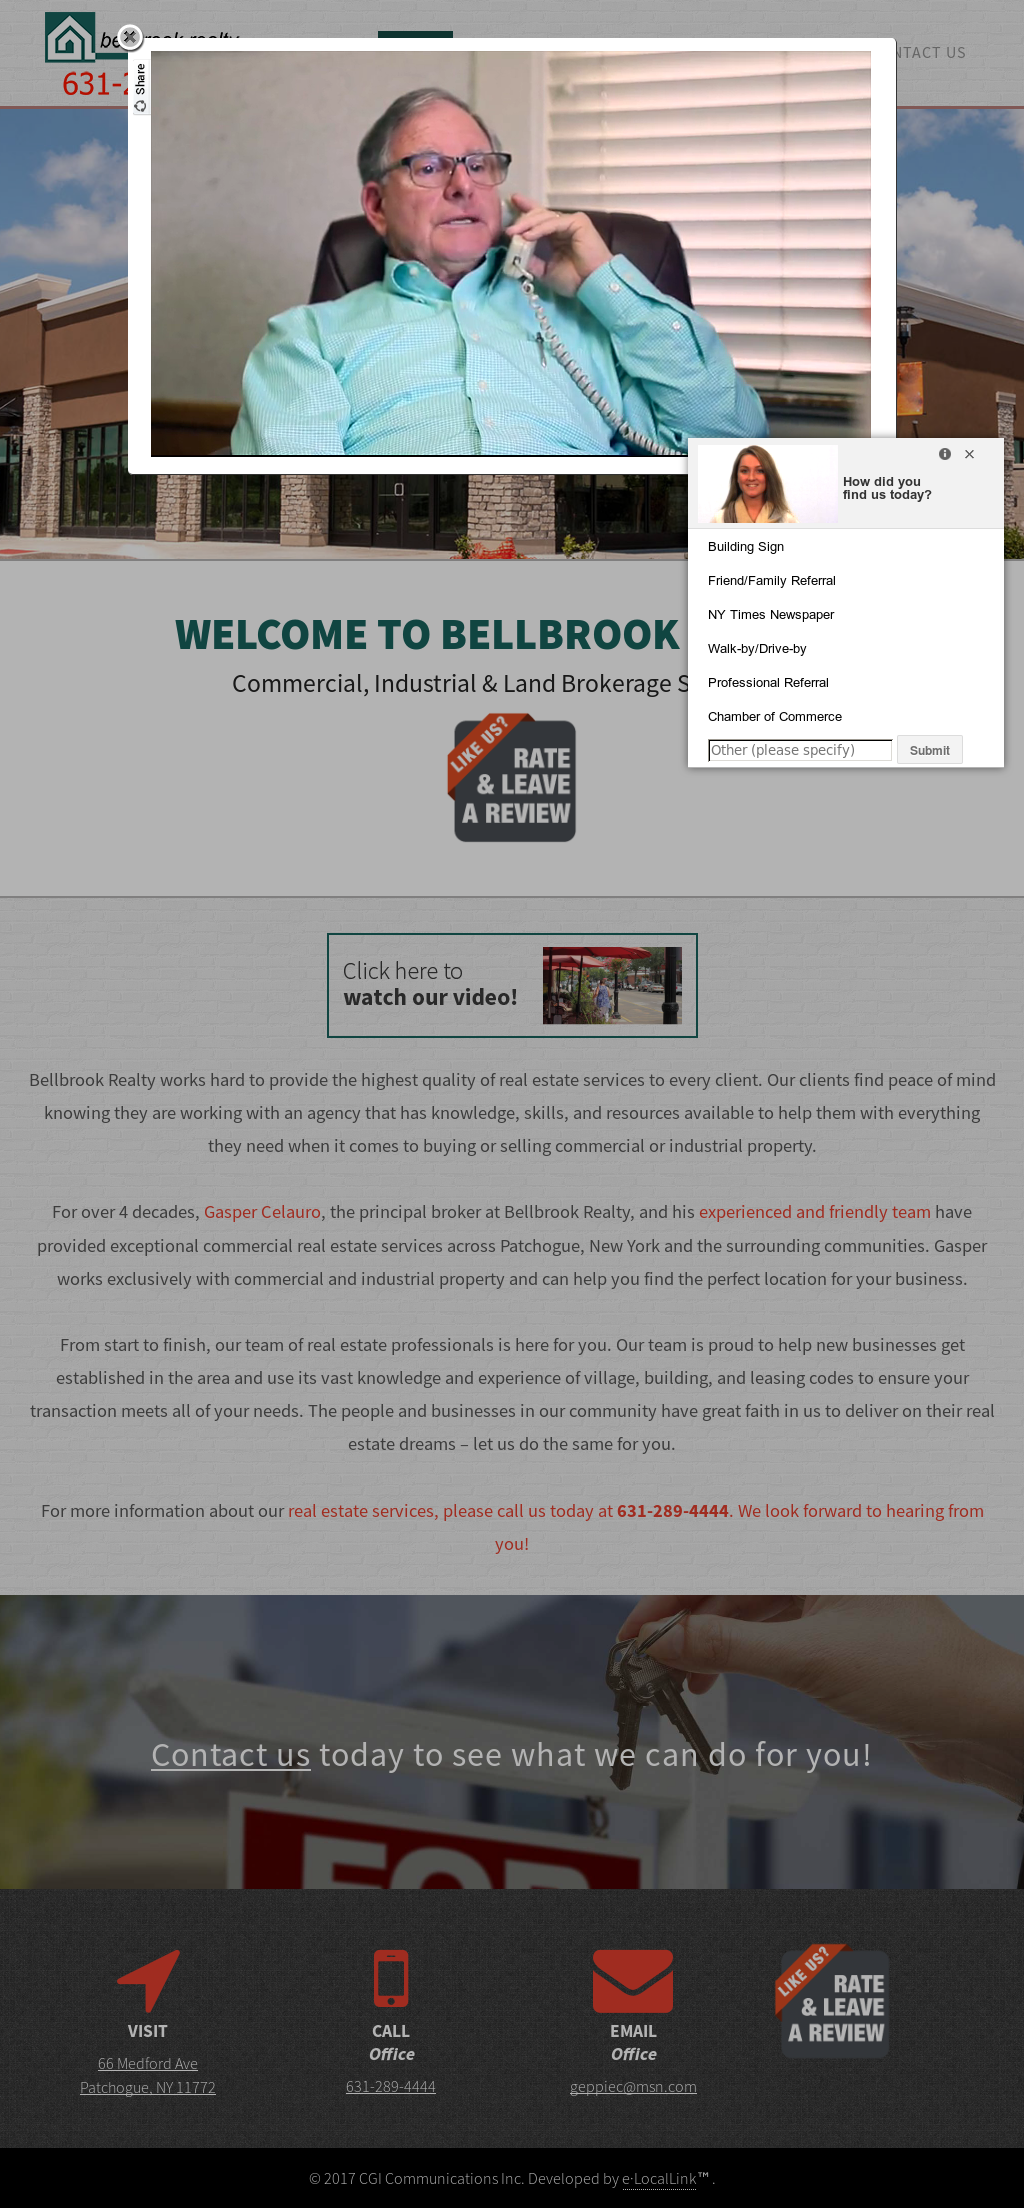 bellbrook dating site Fiber: at&t is 1% available in bellbrook | dsl: at&t is 100% available in  dsl  provides internet service via phone cables and is up to ten times faster than.